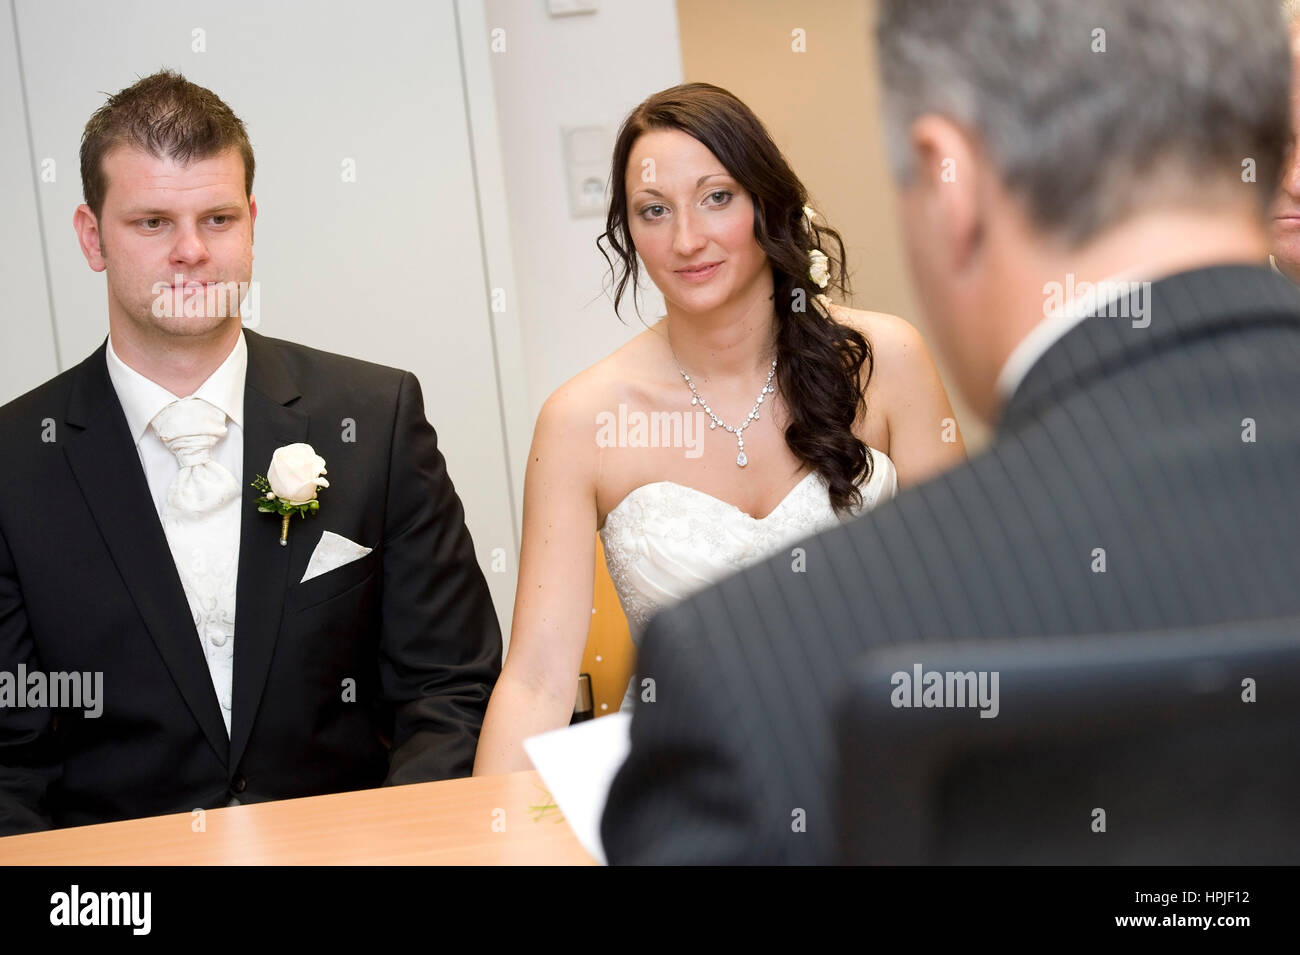 Model released , Standesamtliche Trauung - civil marriage Stock Photo